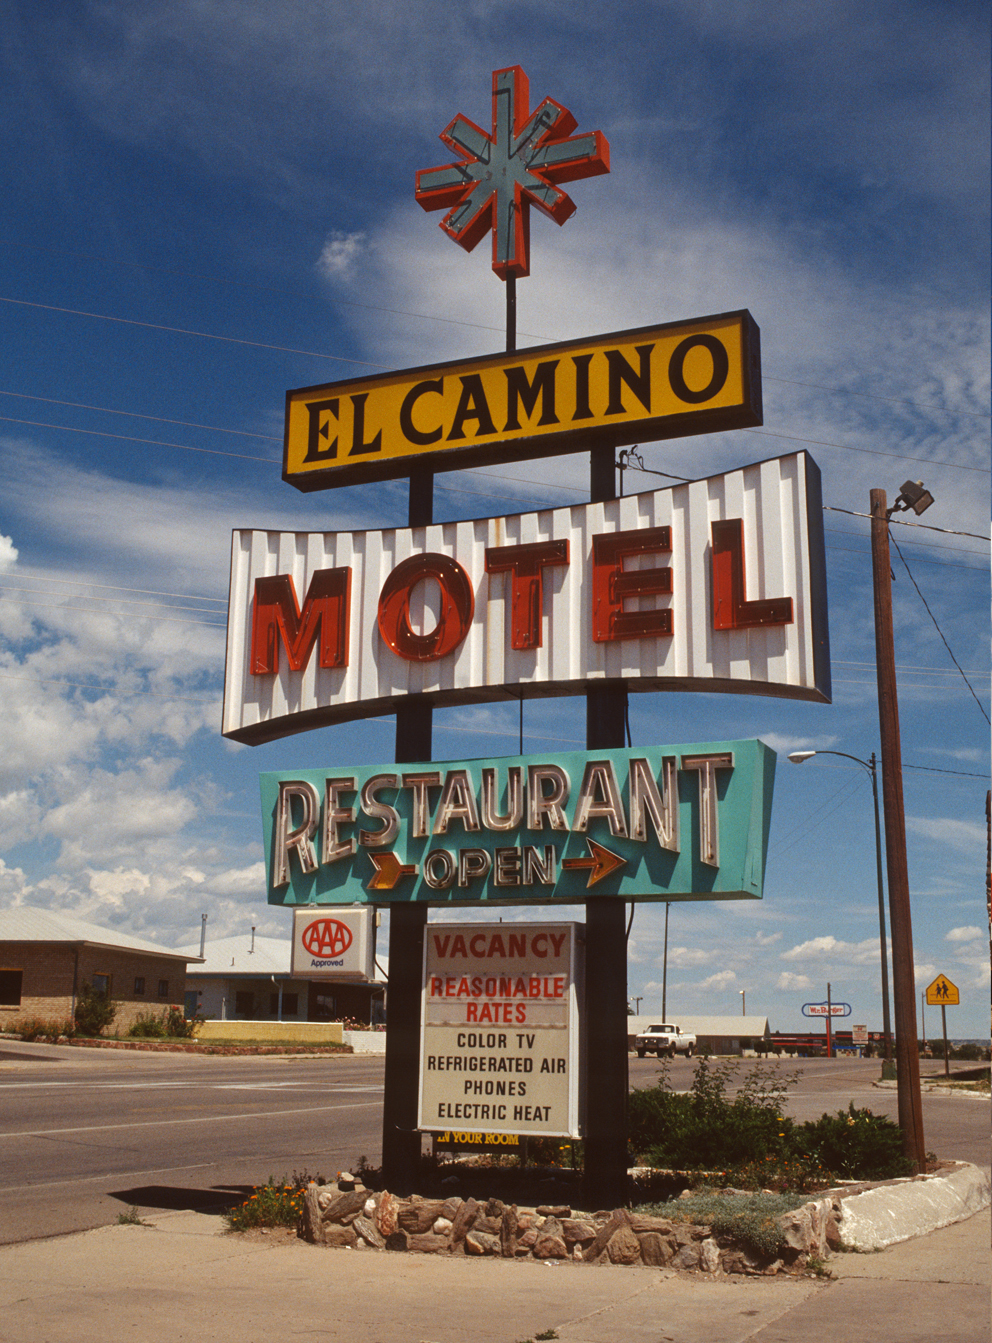 El Camino Motel, photographed in New Mexico